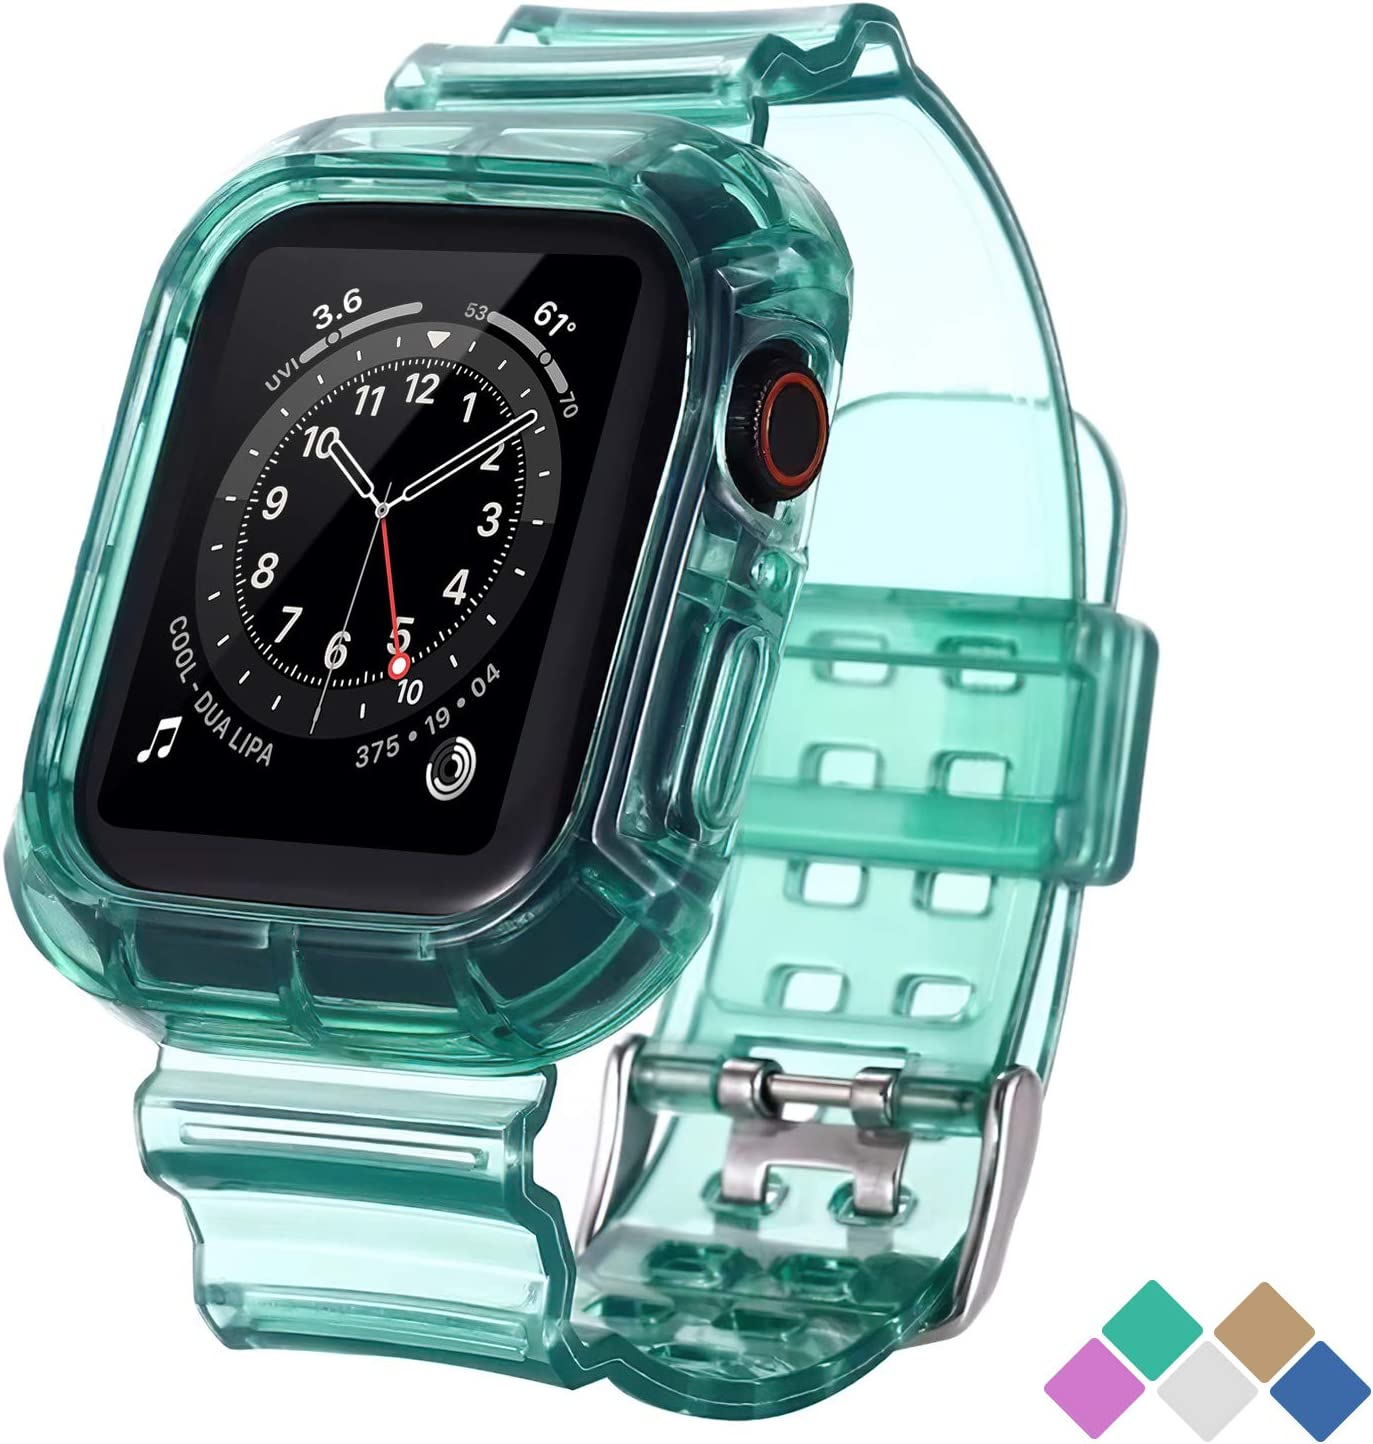 POHNUI Bands Compatible with Apple Watch Bands 38mm 40mm 42mm 44mm Women Men, Clear Band with Bumper Case, Soft Shockproof Band Strap for Apple iWatch Series SE/6/5/4/3/2/1(Green 38/40mm)